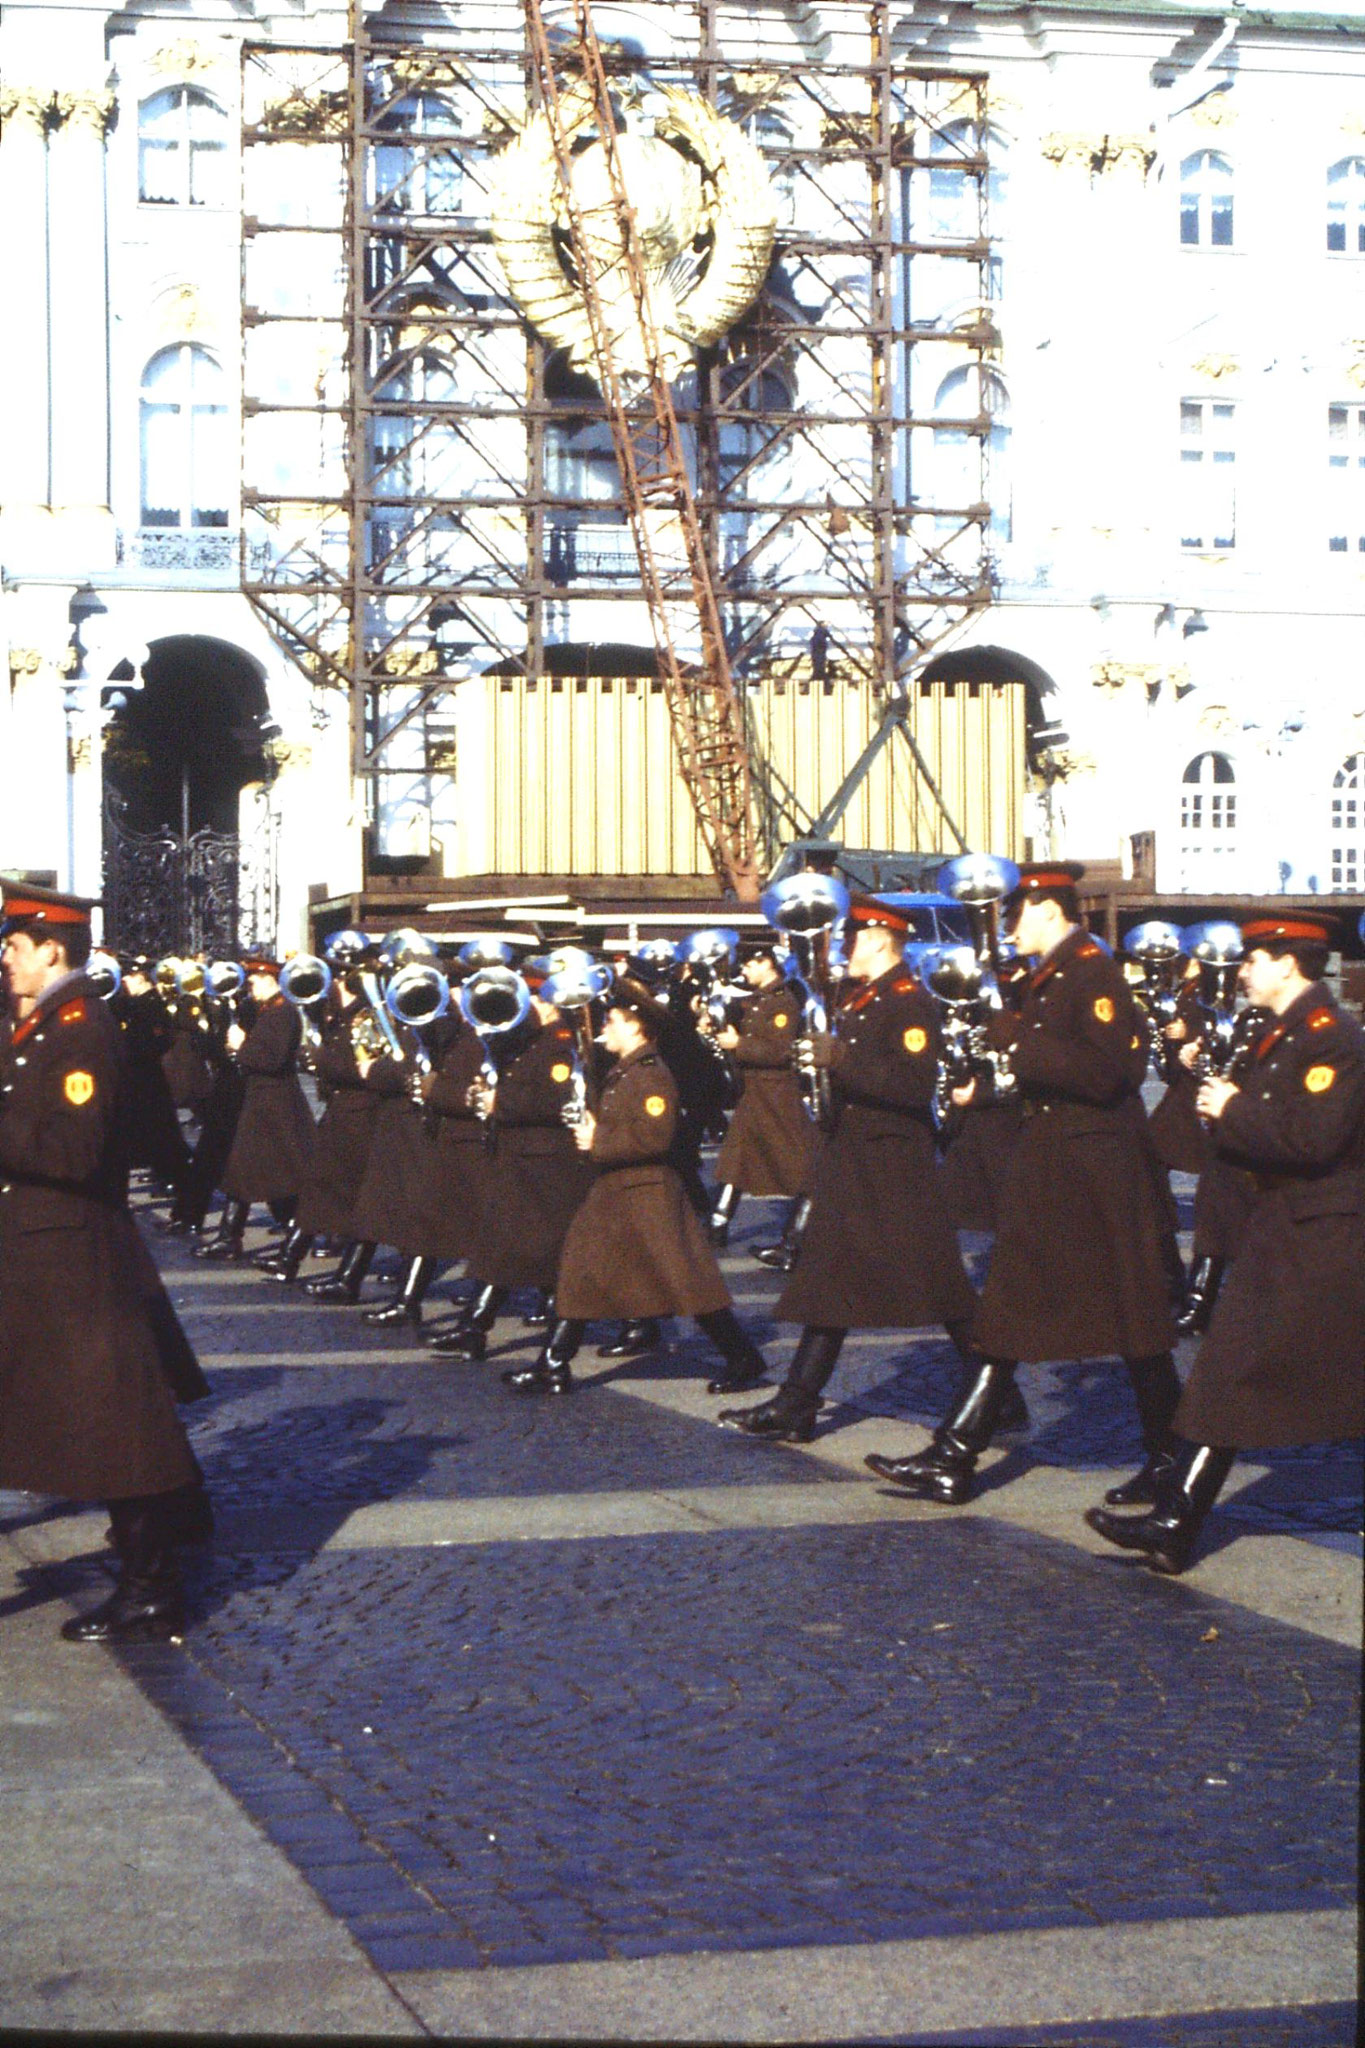 13/10/1988: 20:  Leningrad band in front of Hermitage